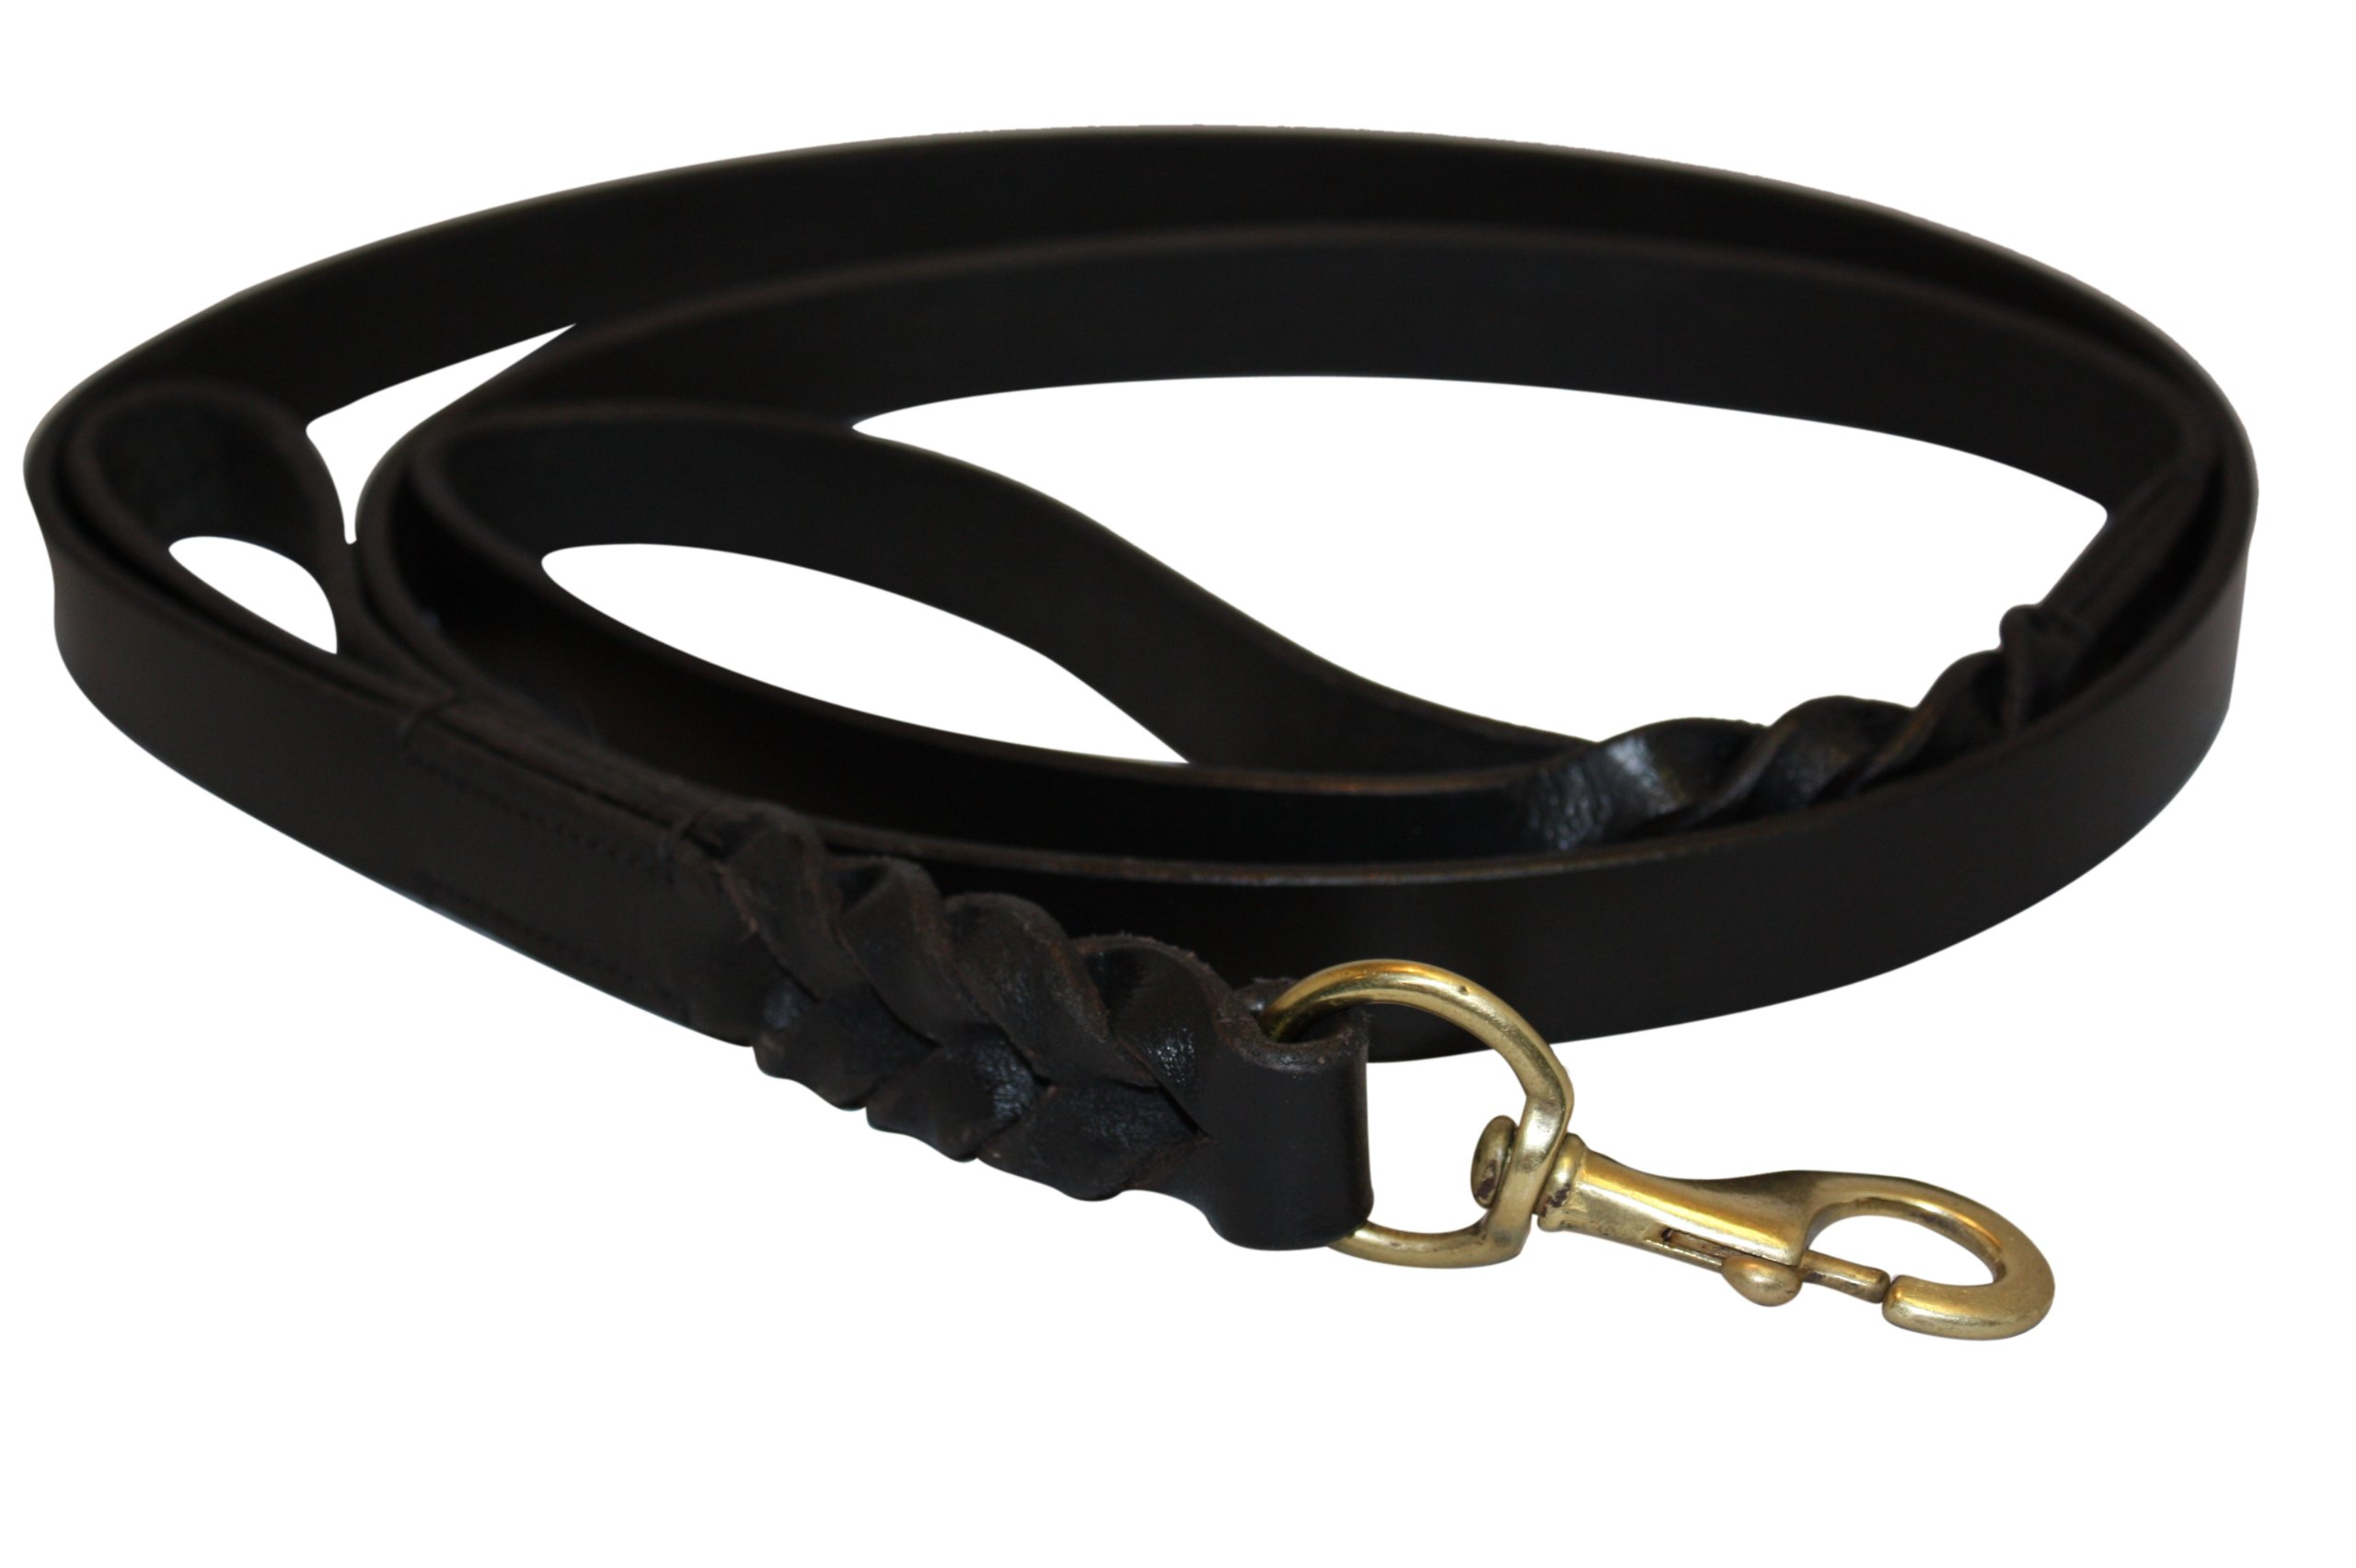 Angel Braided Black Leather 6' x 3/4'' Leash, with Extra Traffic Handle, Trainer Recommended, Perfect for Daily Use, Genuine Top Grain Leather, Maximum Control Traffic Handle. Pro Collection